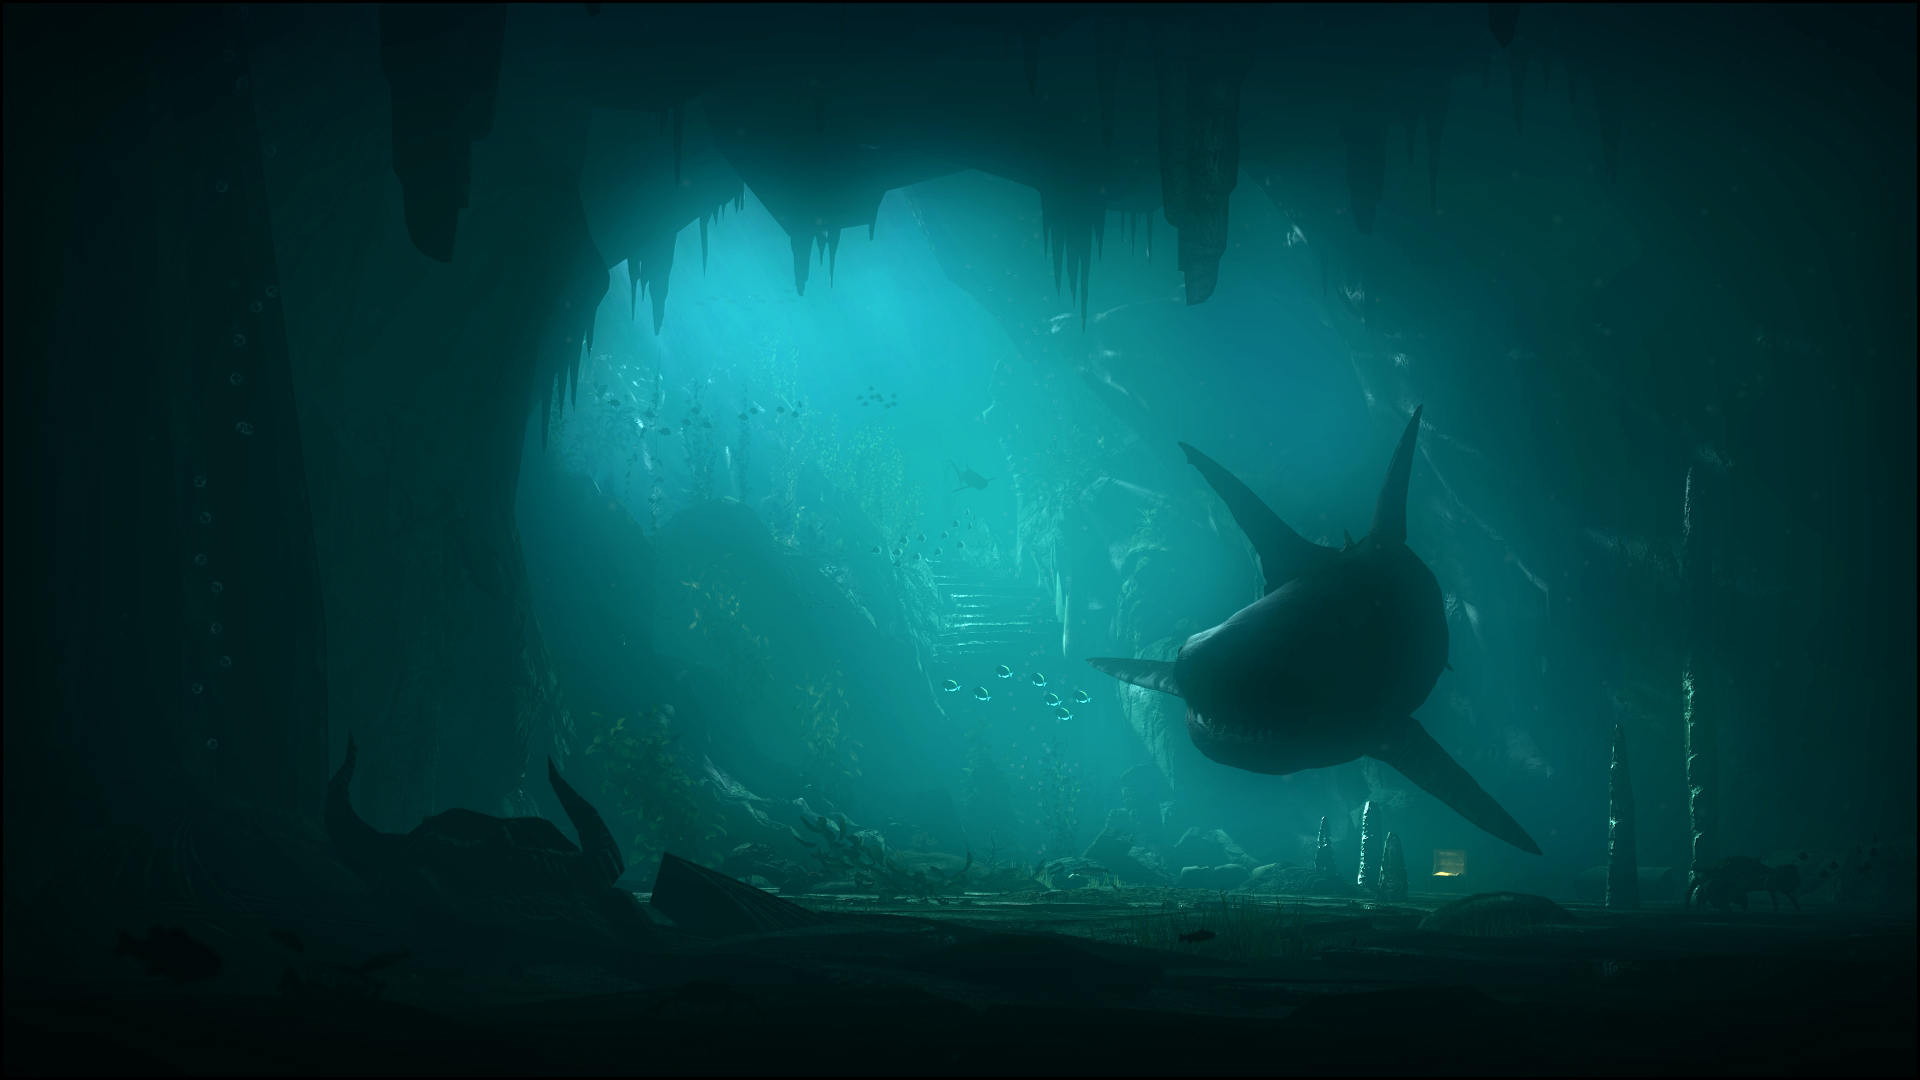 The Last Megalodon by Mask1985